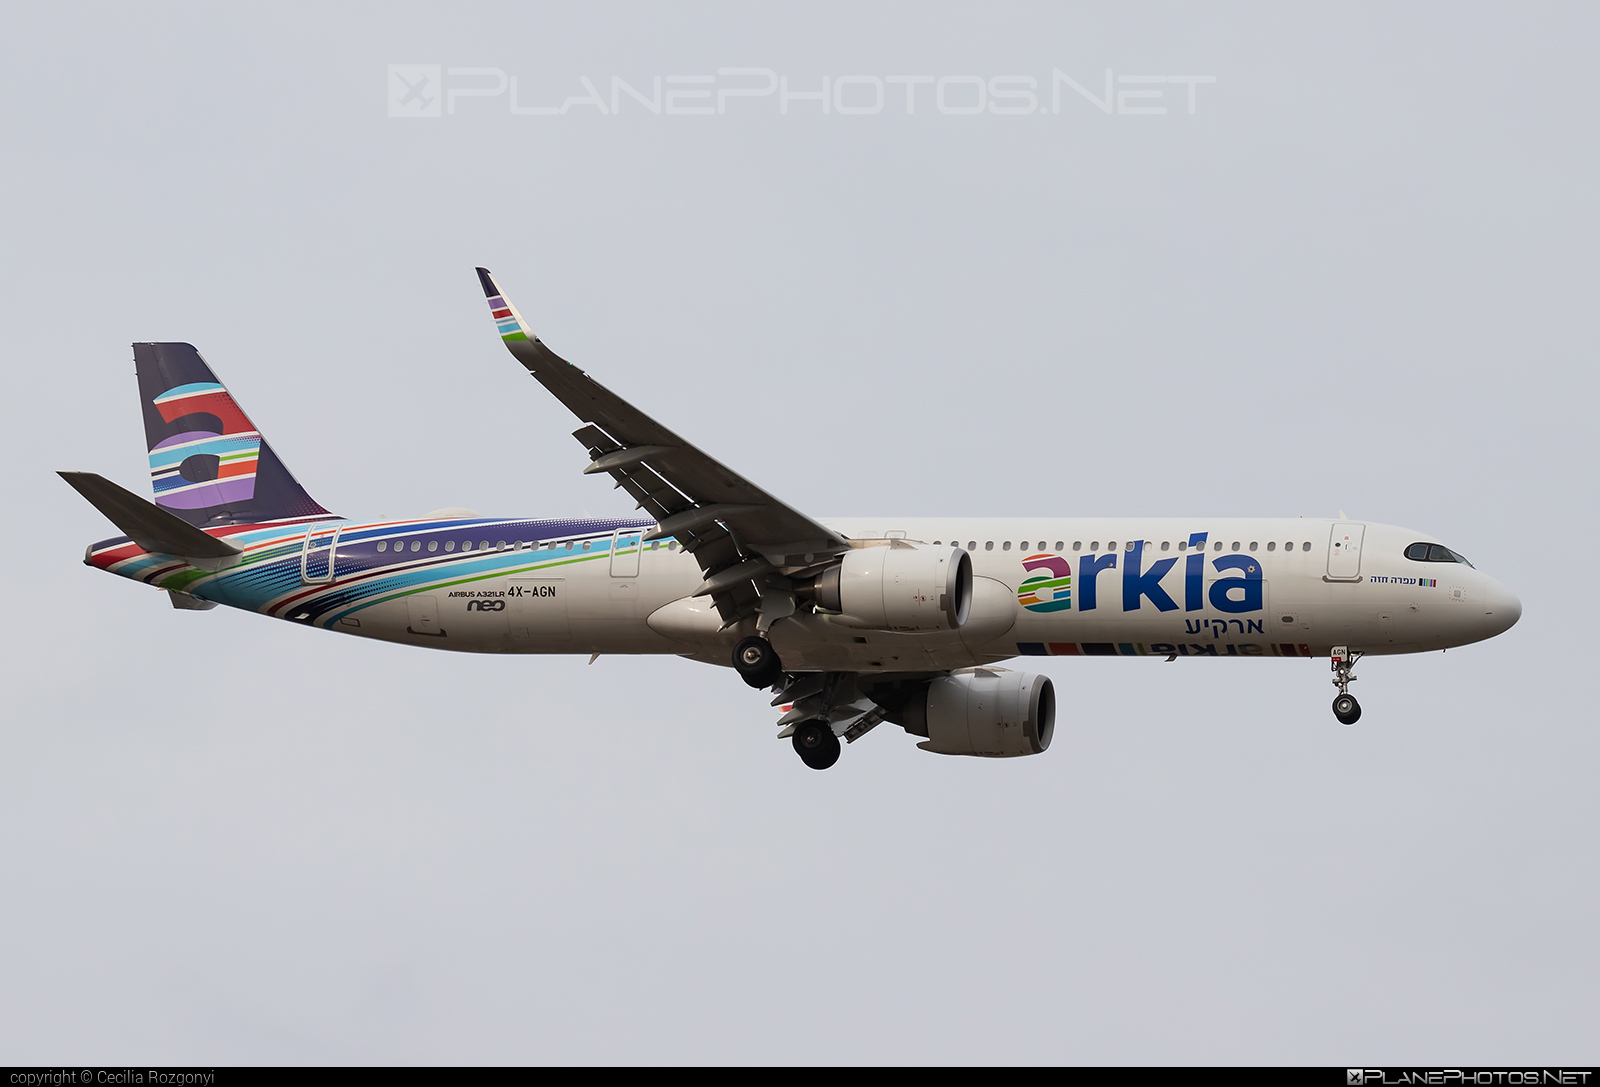 Airbus A321-251NX - 4X-AGN operated by Arkia Israeli Airlines #a320family #a321 #a321neo #airbus #airbus321 #airbus321lr